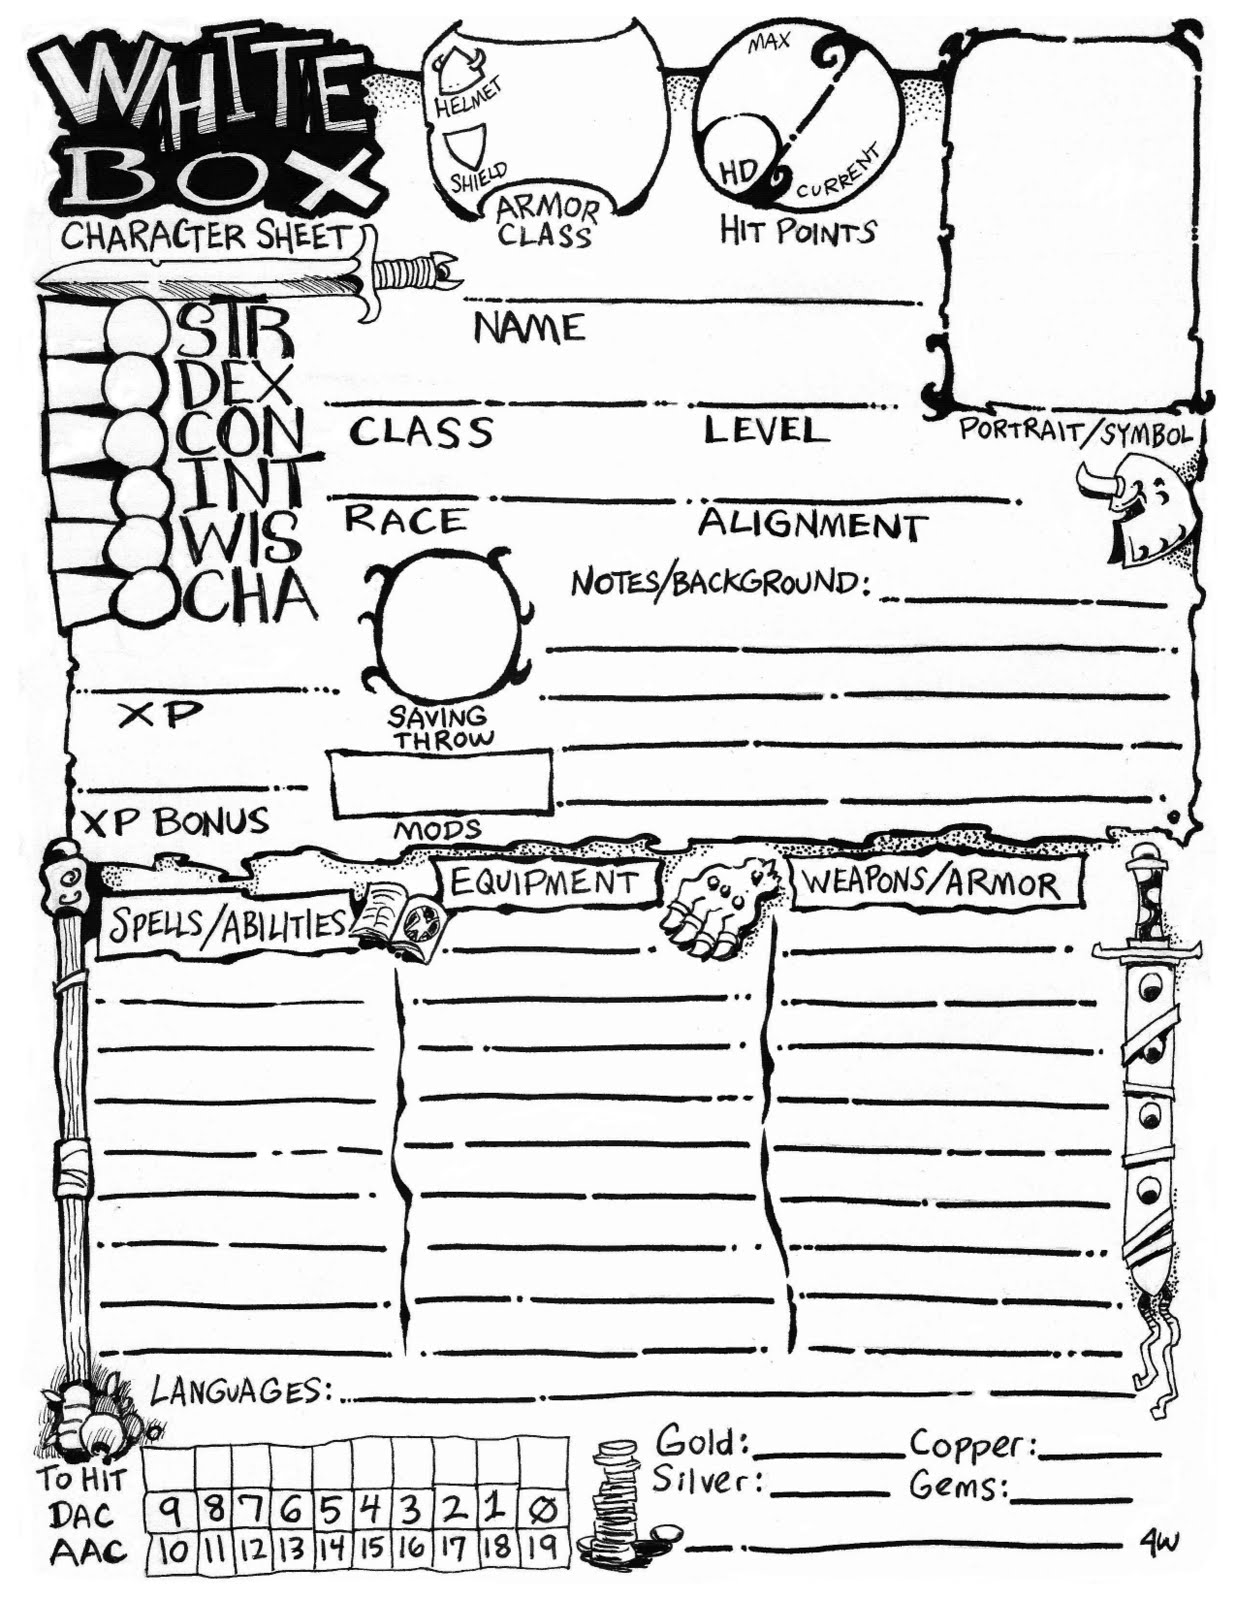 Character Sheet by James V.  West